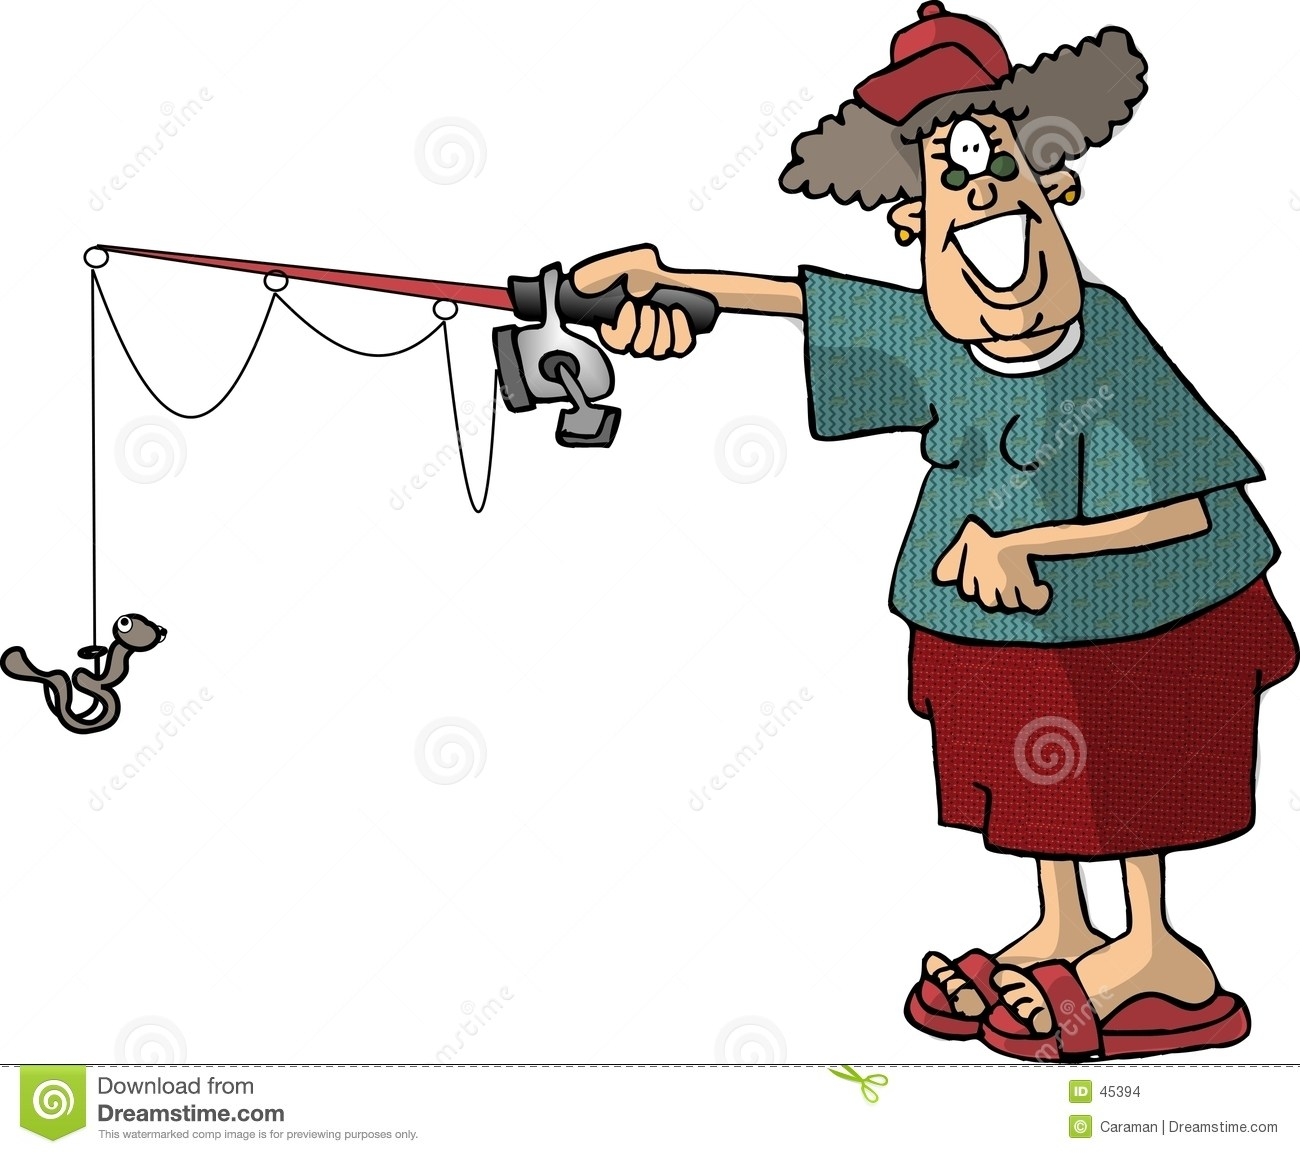 Woman fishing image clipart graphic royalty free download Woman fishing clipart 5 » Clipart Portal graphic royalty free download